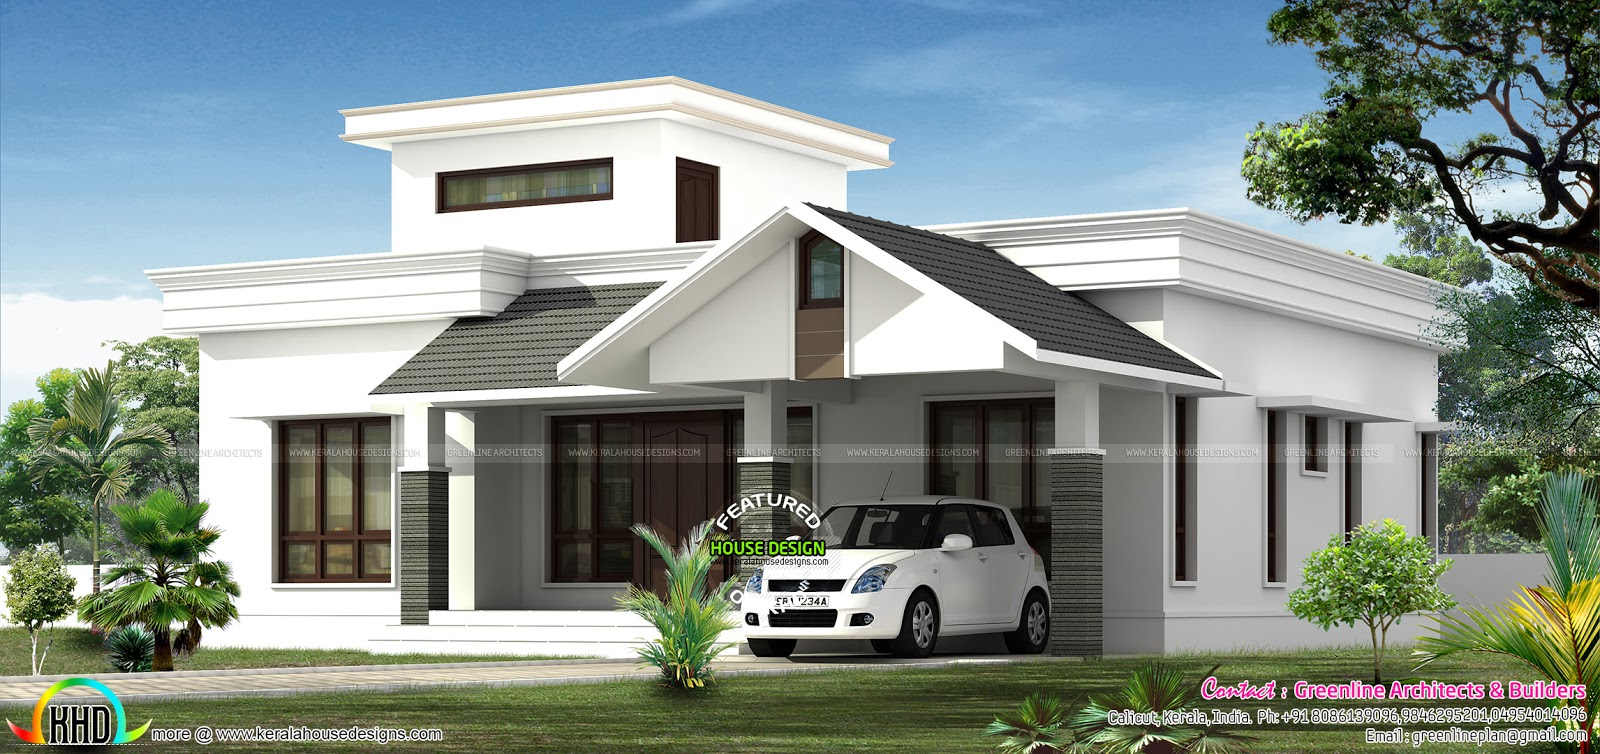 Low budjet single floor house design two side views Low budget house plans